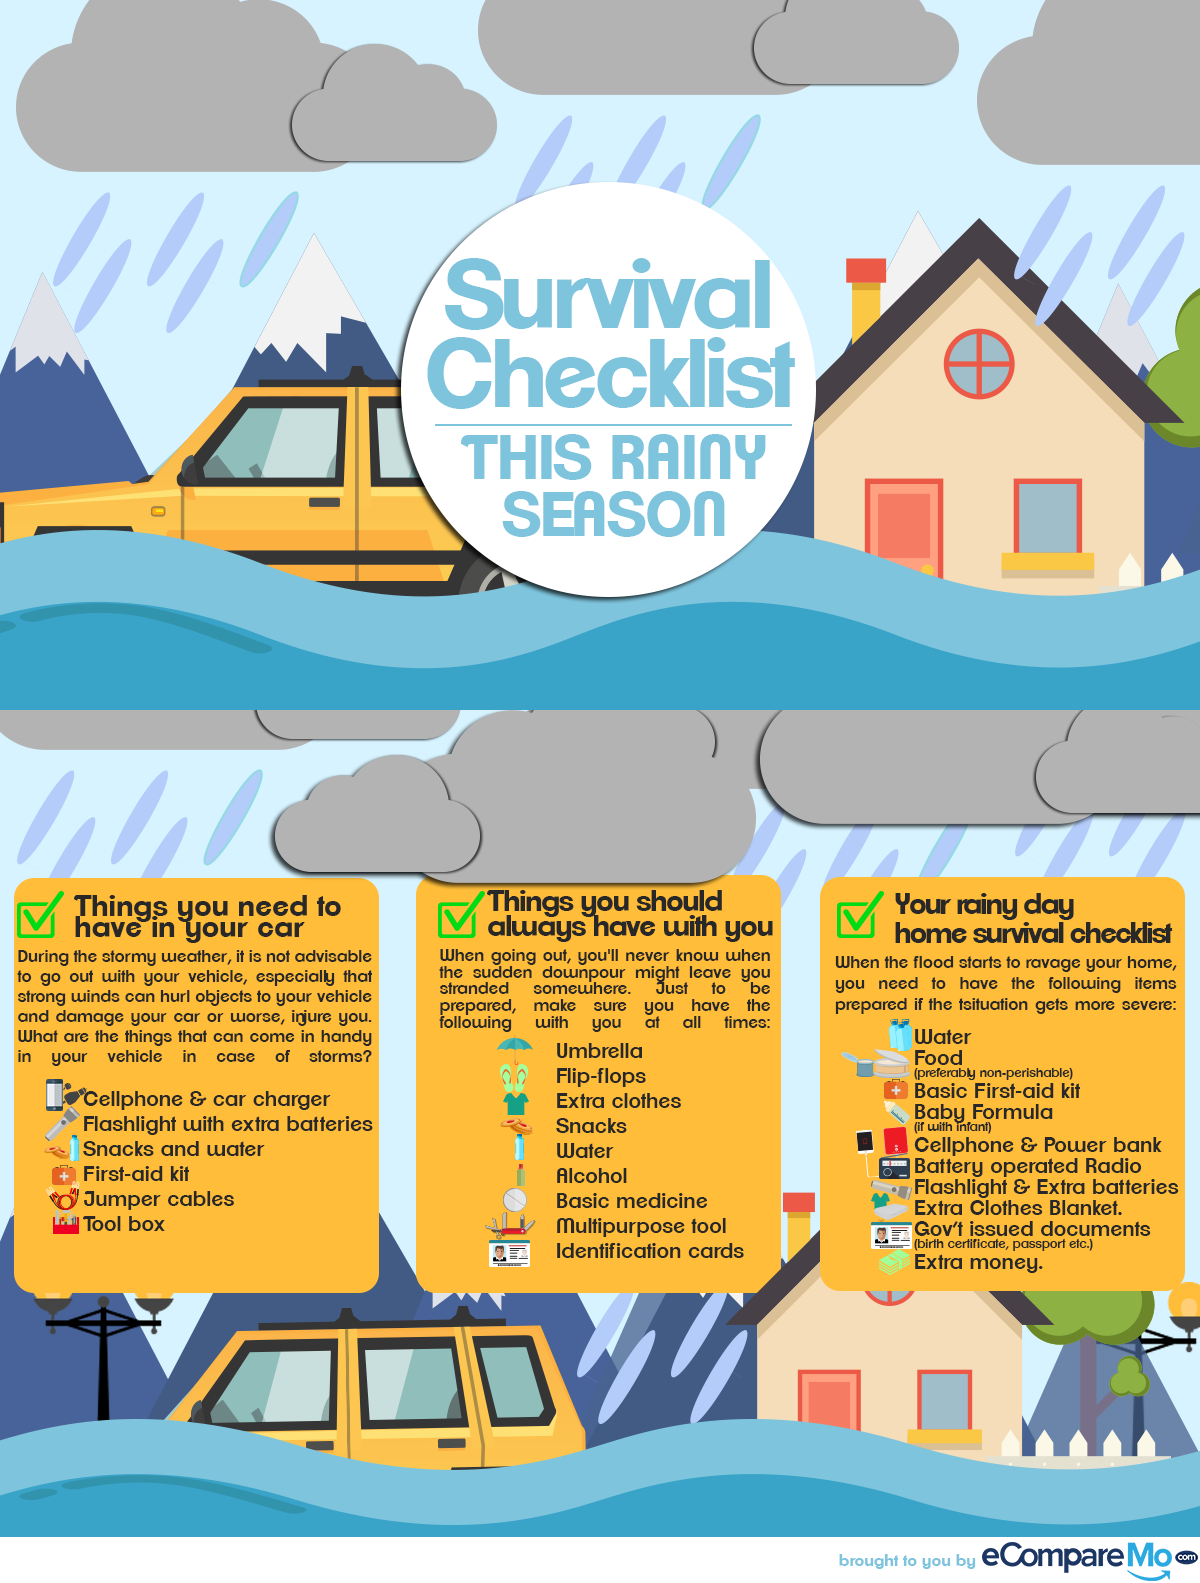 INFOGRAPHIC: Important Things To Keep In Mind During The Rainy Season